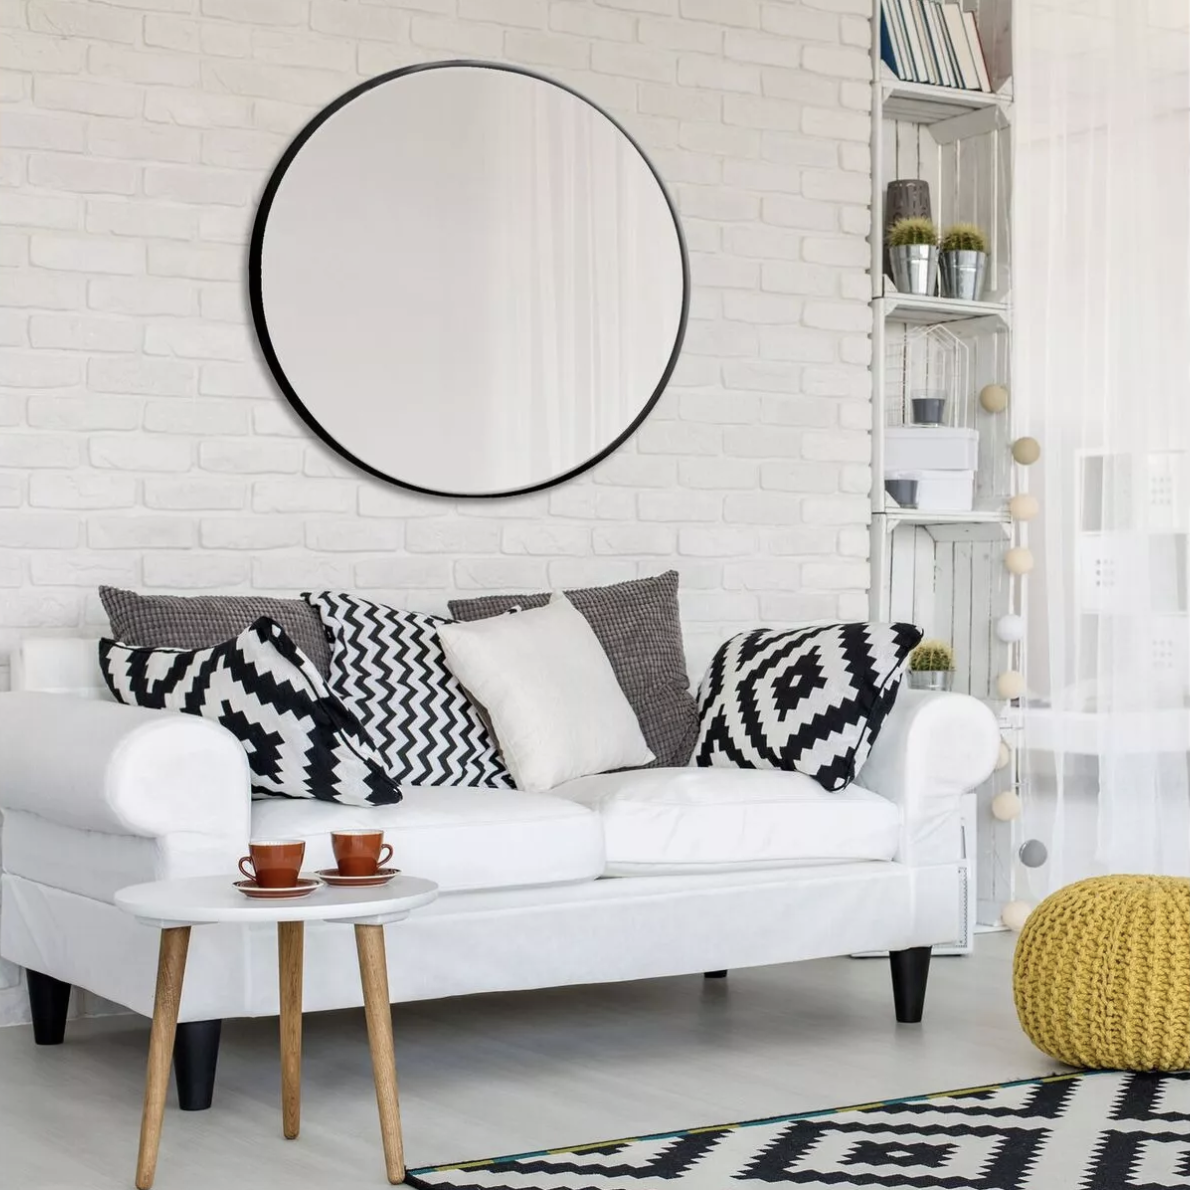 How to style a circle mirror in your home